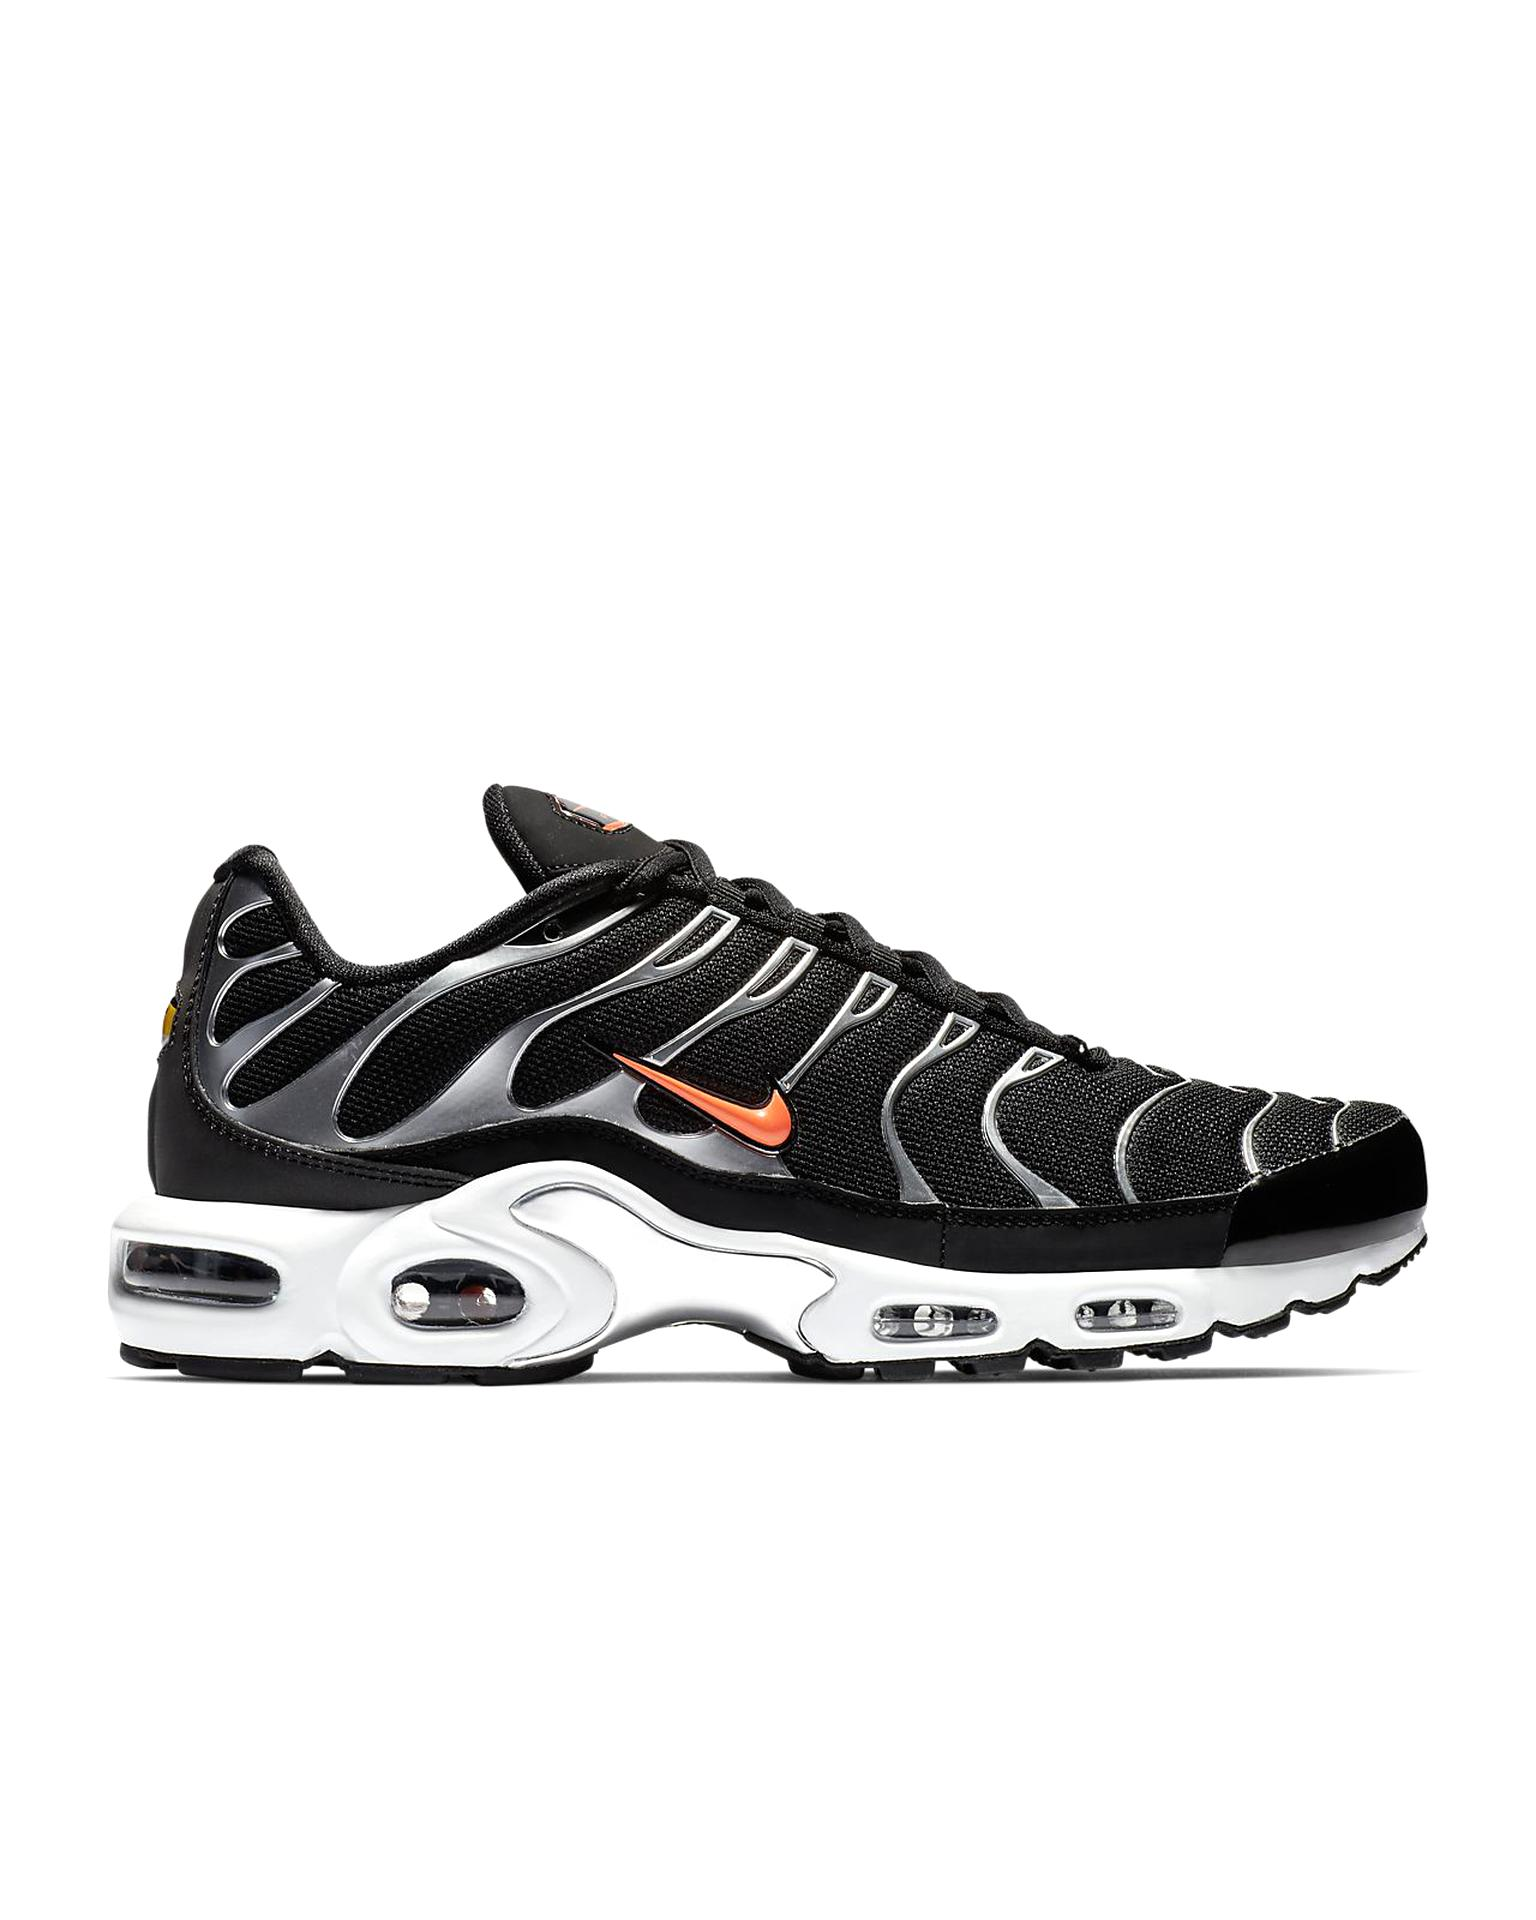 Nike Air Max Tn d'occasion | Plus que 2 à 75%